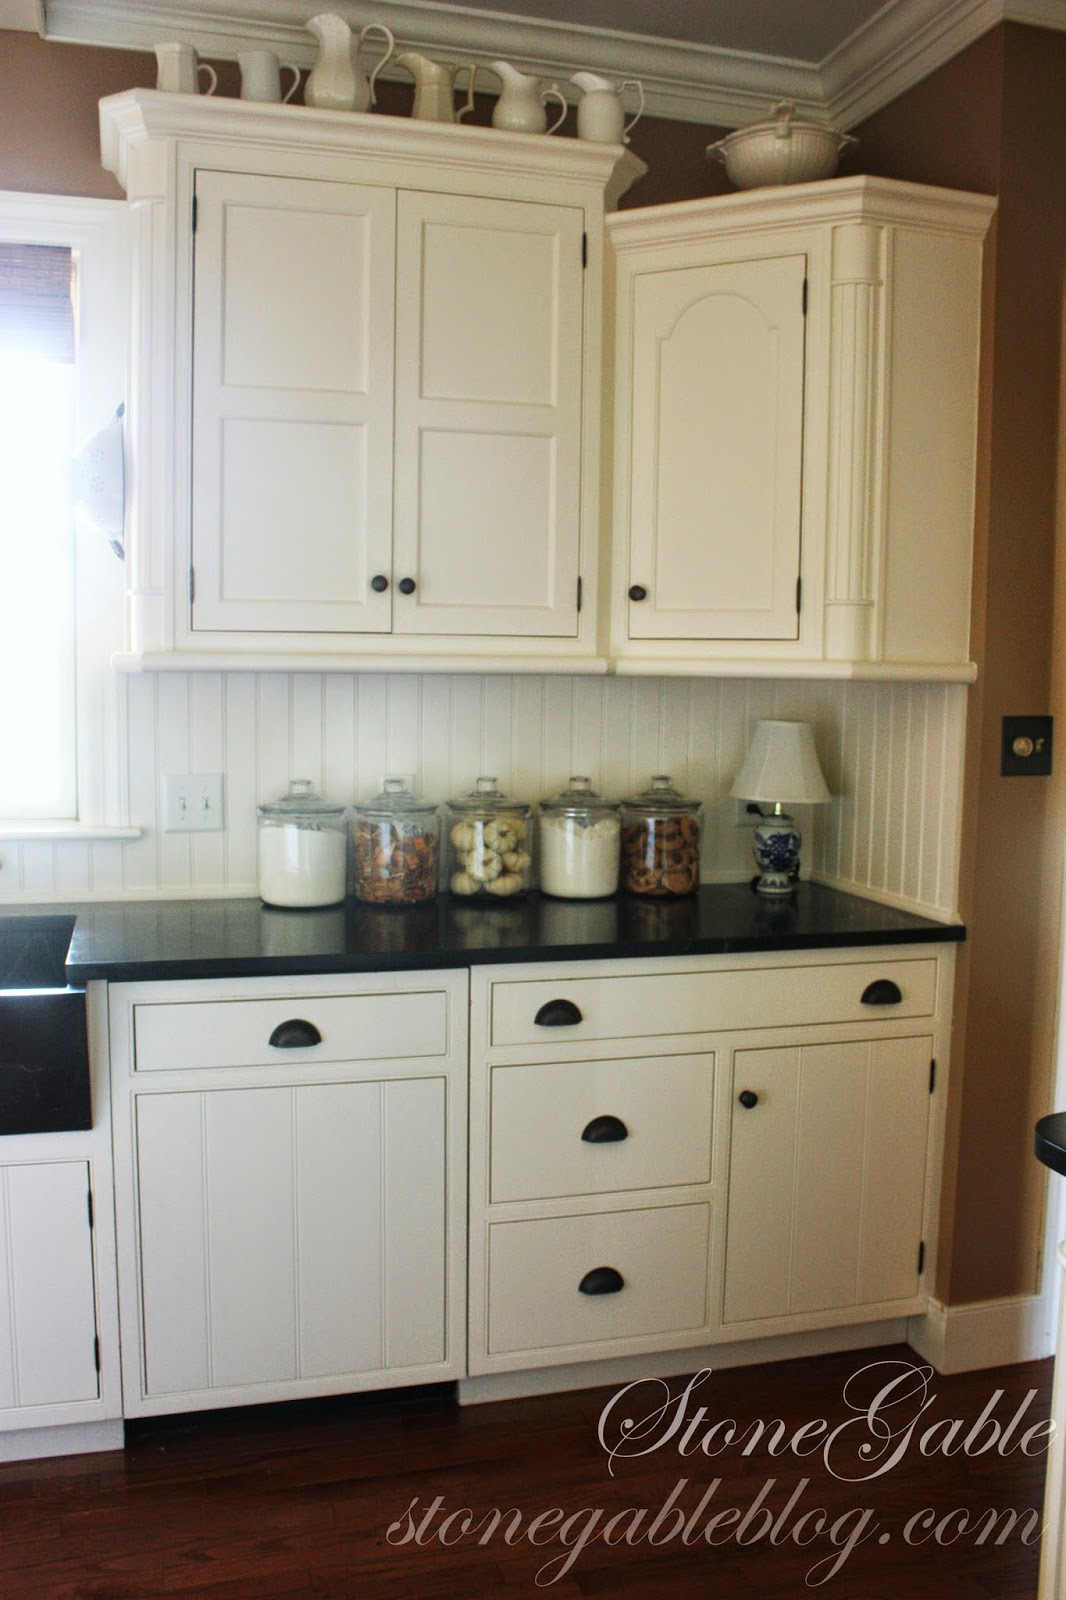 Farmhouse Kitchen White Cabinets 10 elements of a farmhouse kitchen - stonegable